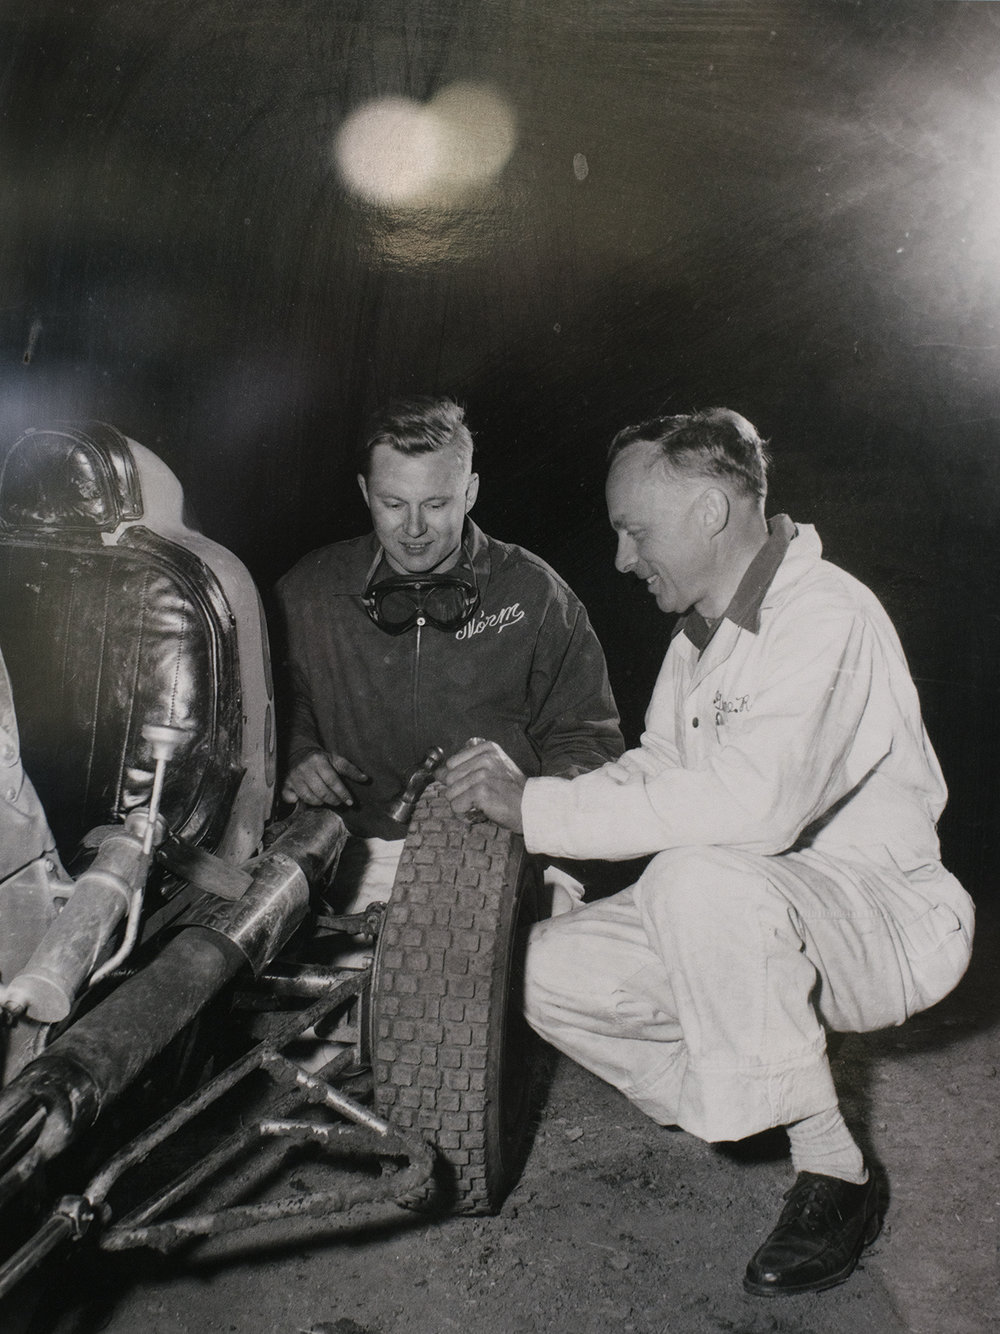 Norm Rapp (left) and his dad, Gene, look over the Kurtis midget during an indoor race at Oakland.